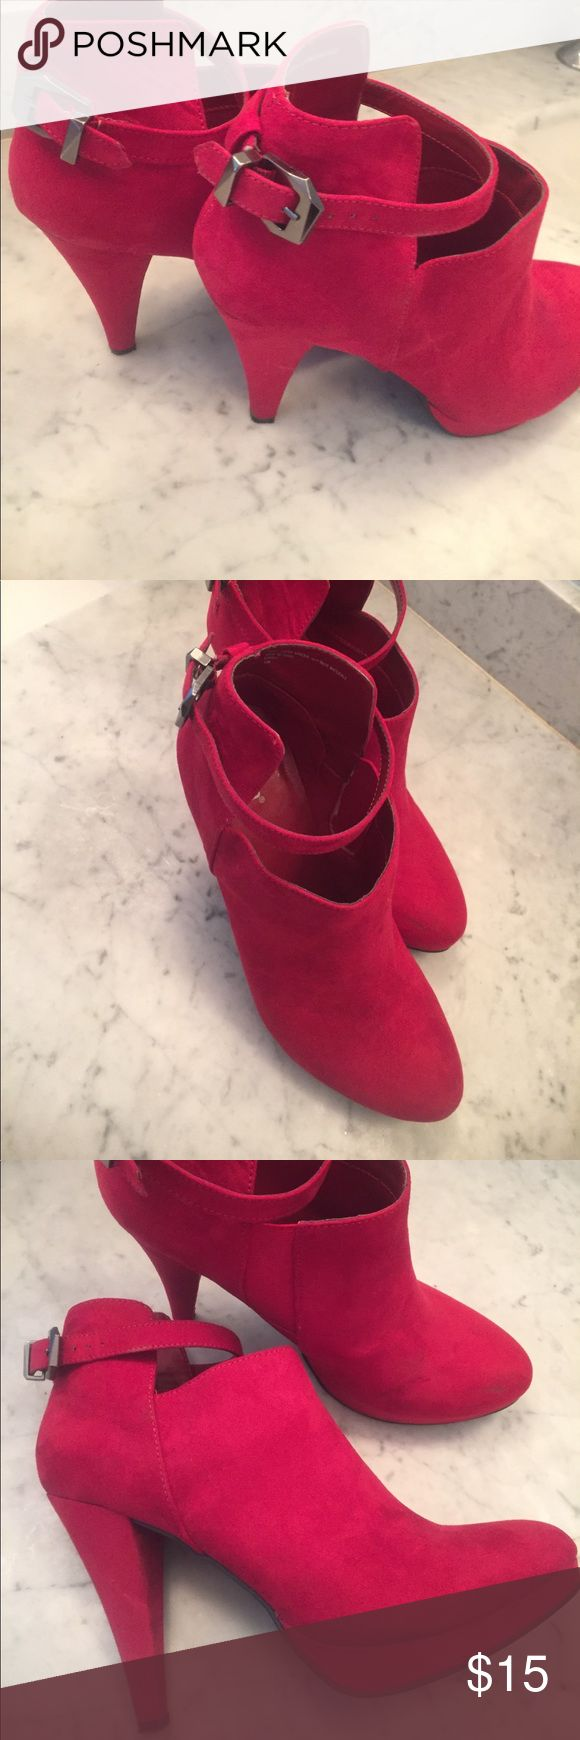 Size 10 suede red platform heels Whoa these are sexy And fun! Comfortable, high heel. Mint condition Diba brand Diba Shoes Ankle Boots & Booties